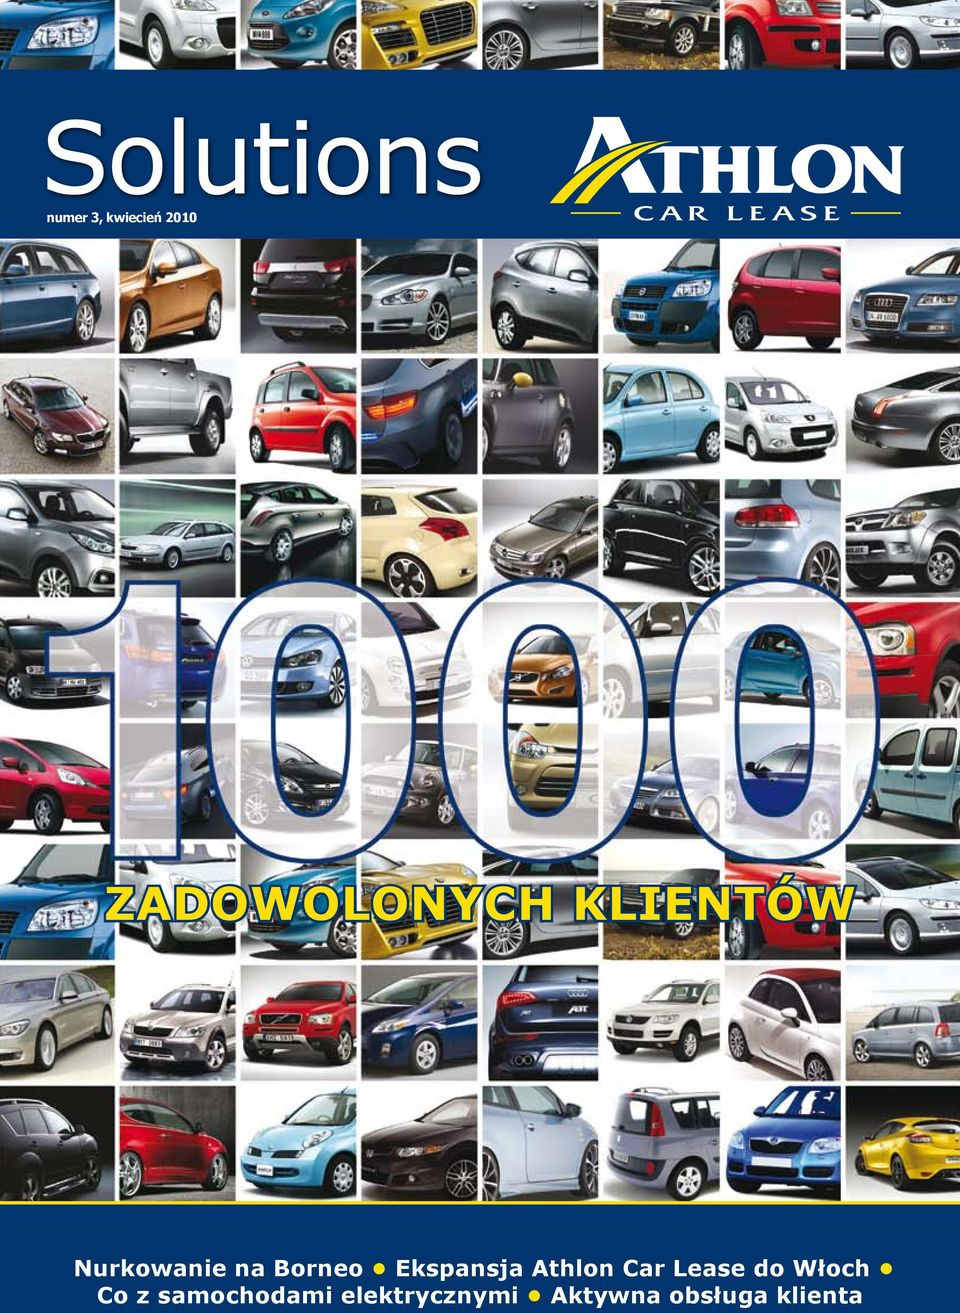 Ekspansja Athlon Car Lease do Włoch Co